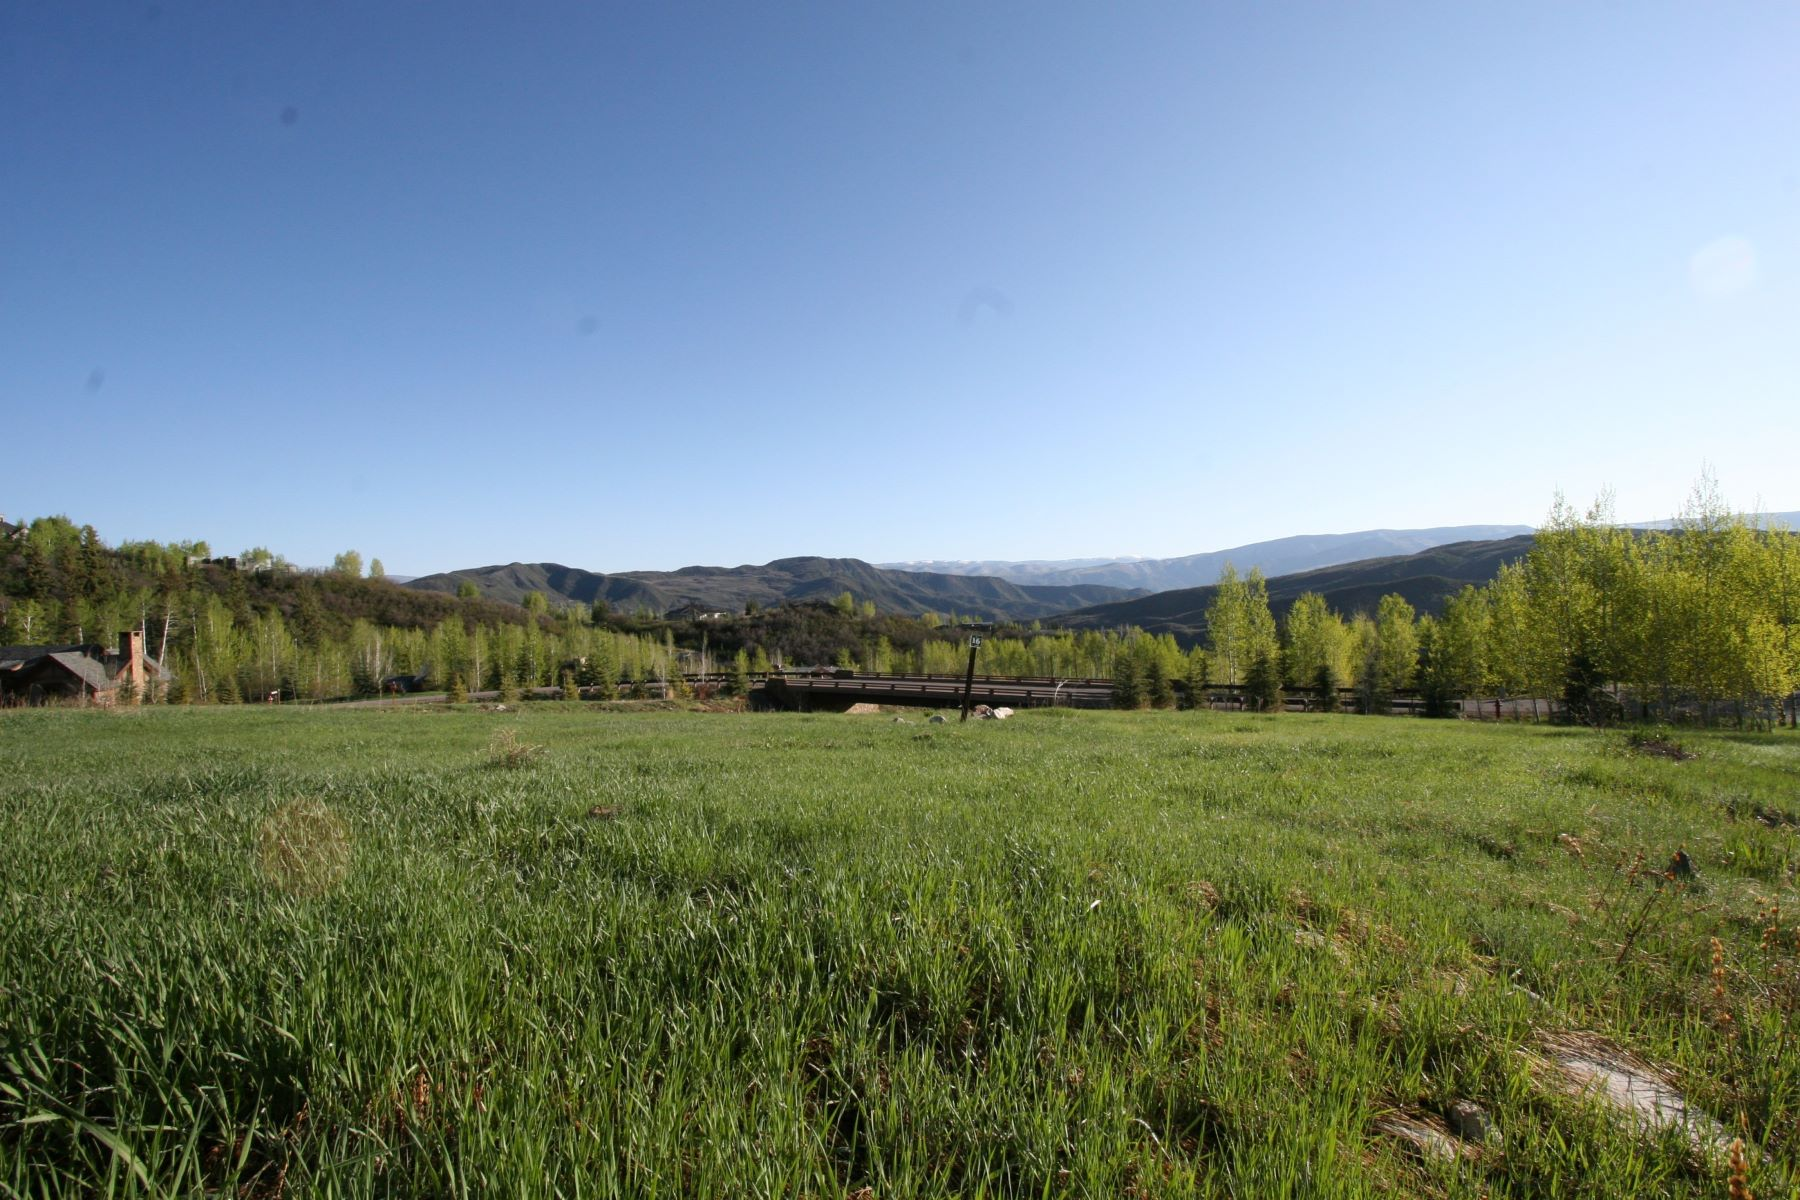 Land for Sale at Lot 16 Two Creeks 841 Serviceberry, Snowmass Village, Colorado, 81615 United States